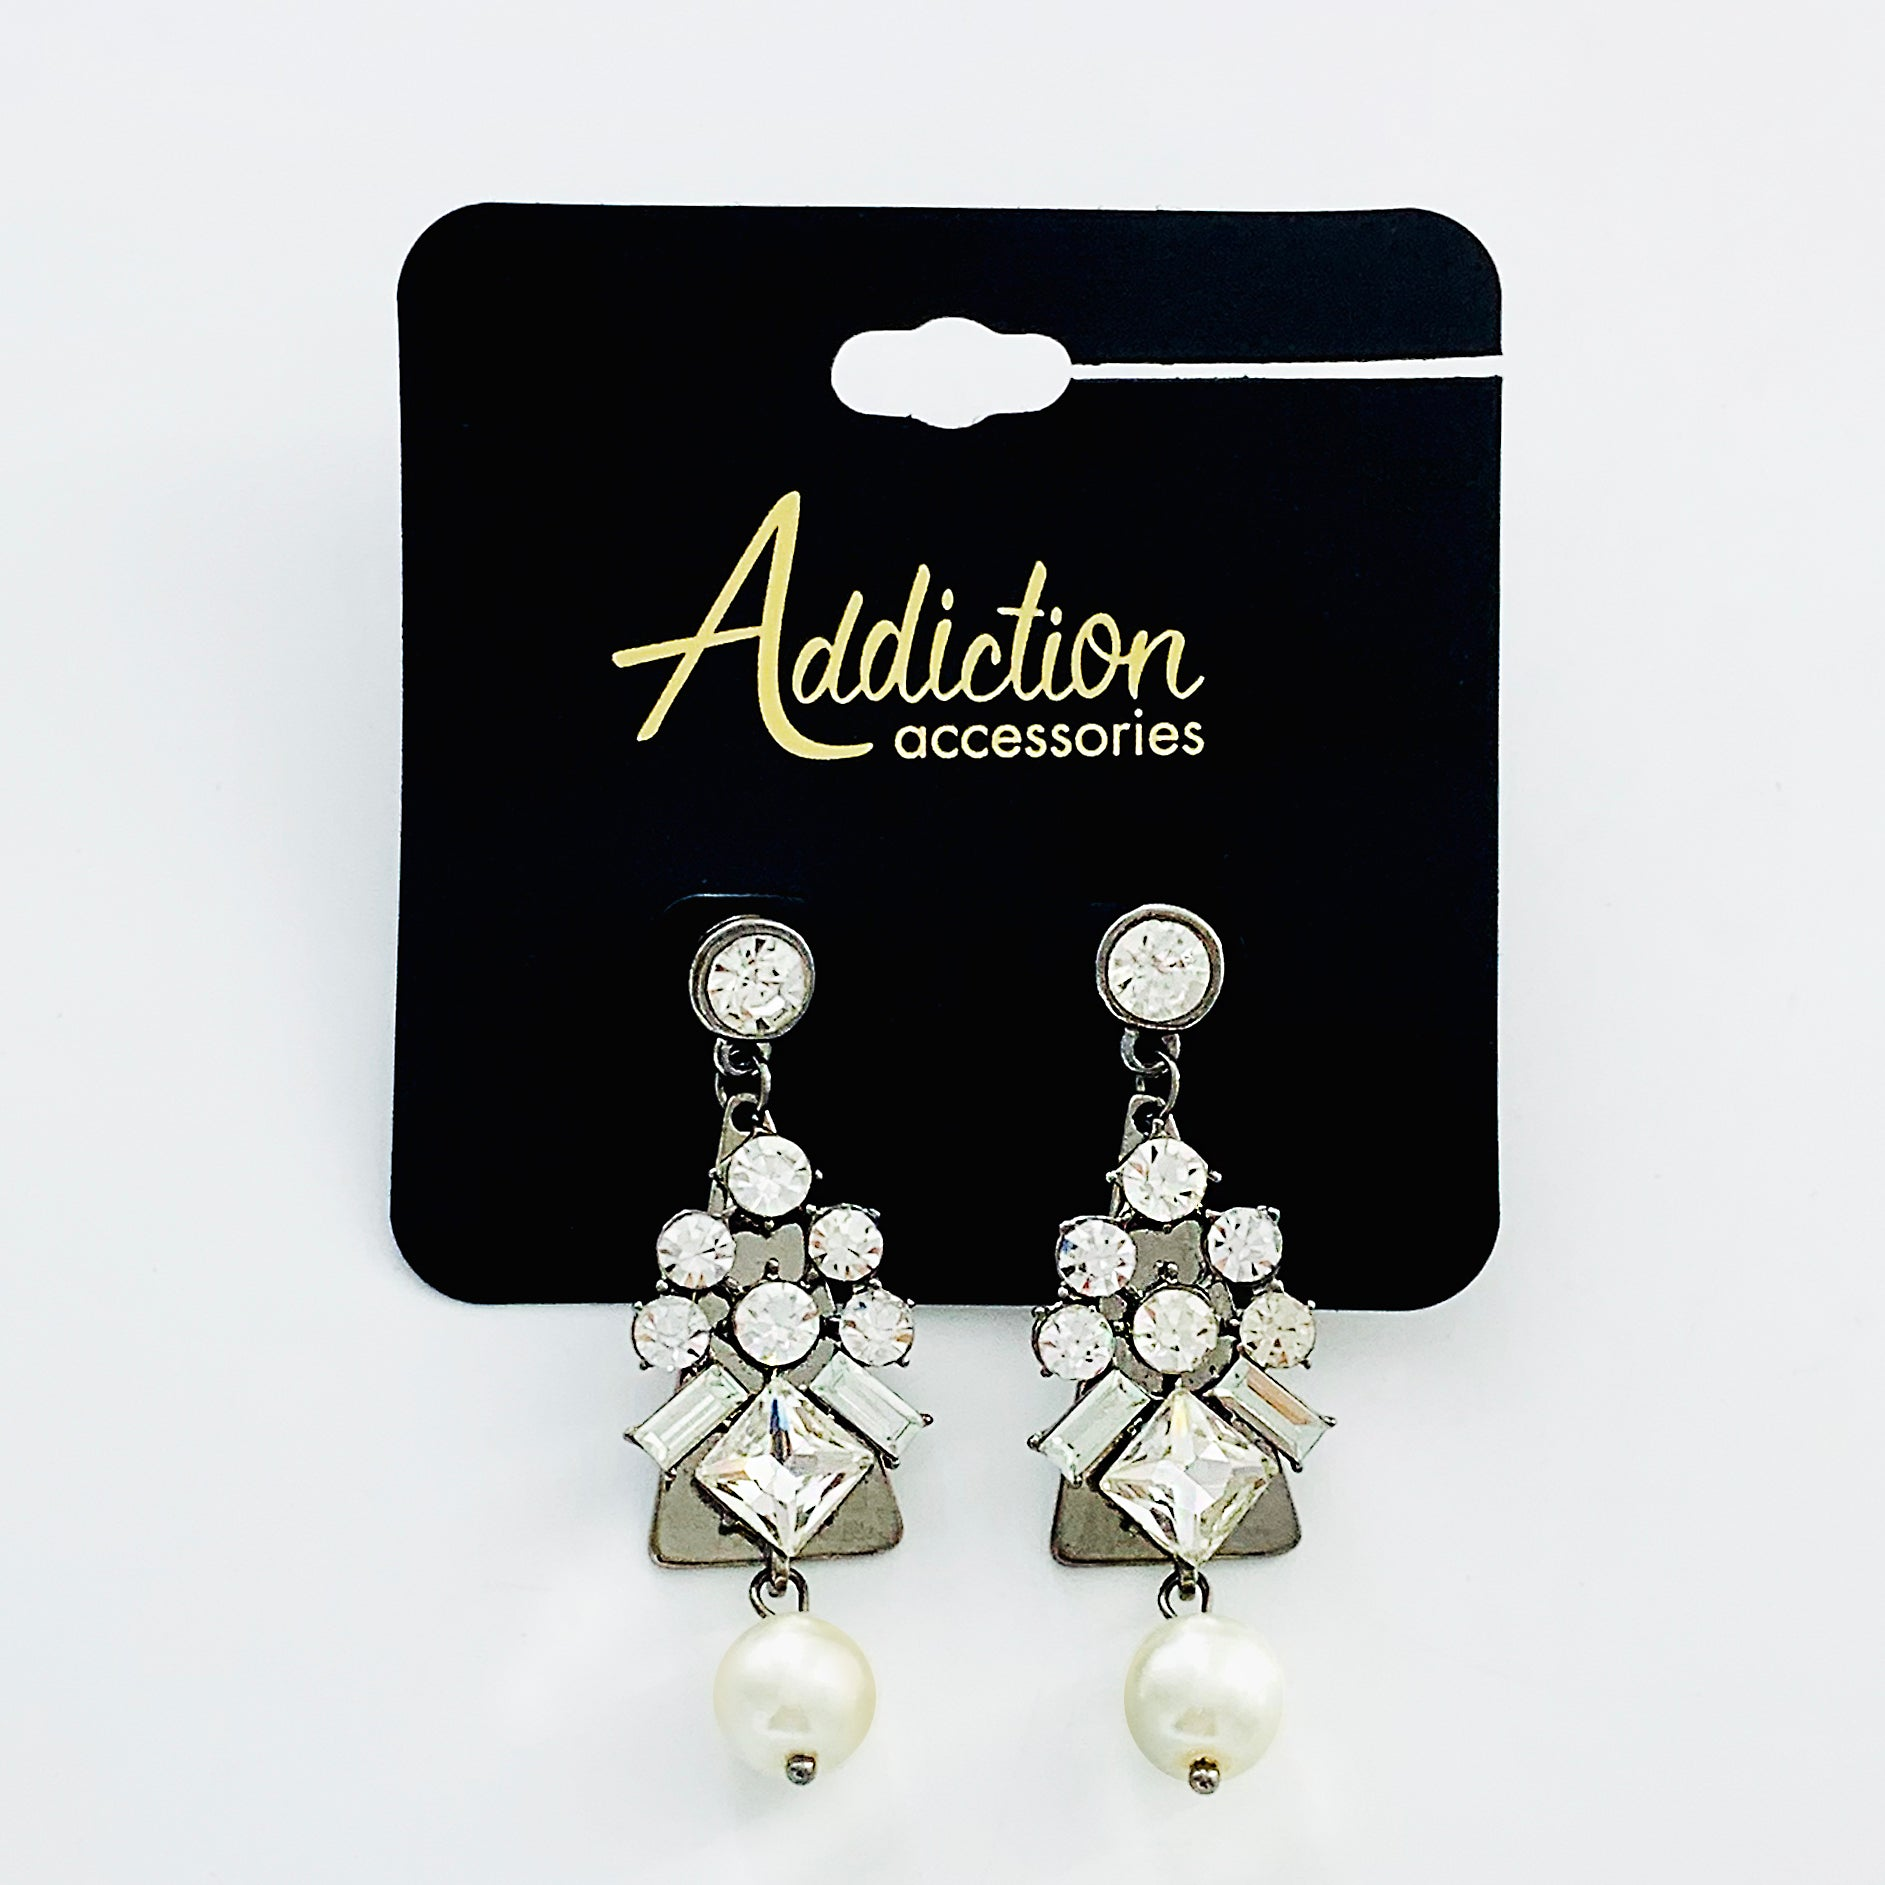 Dangling diamante earrings with pearl